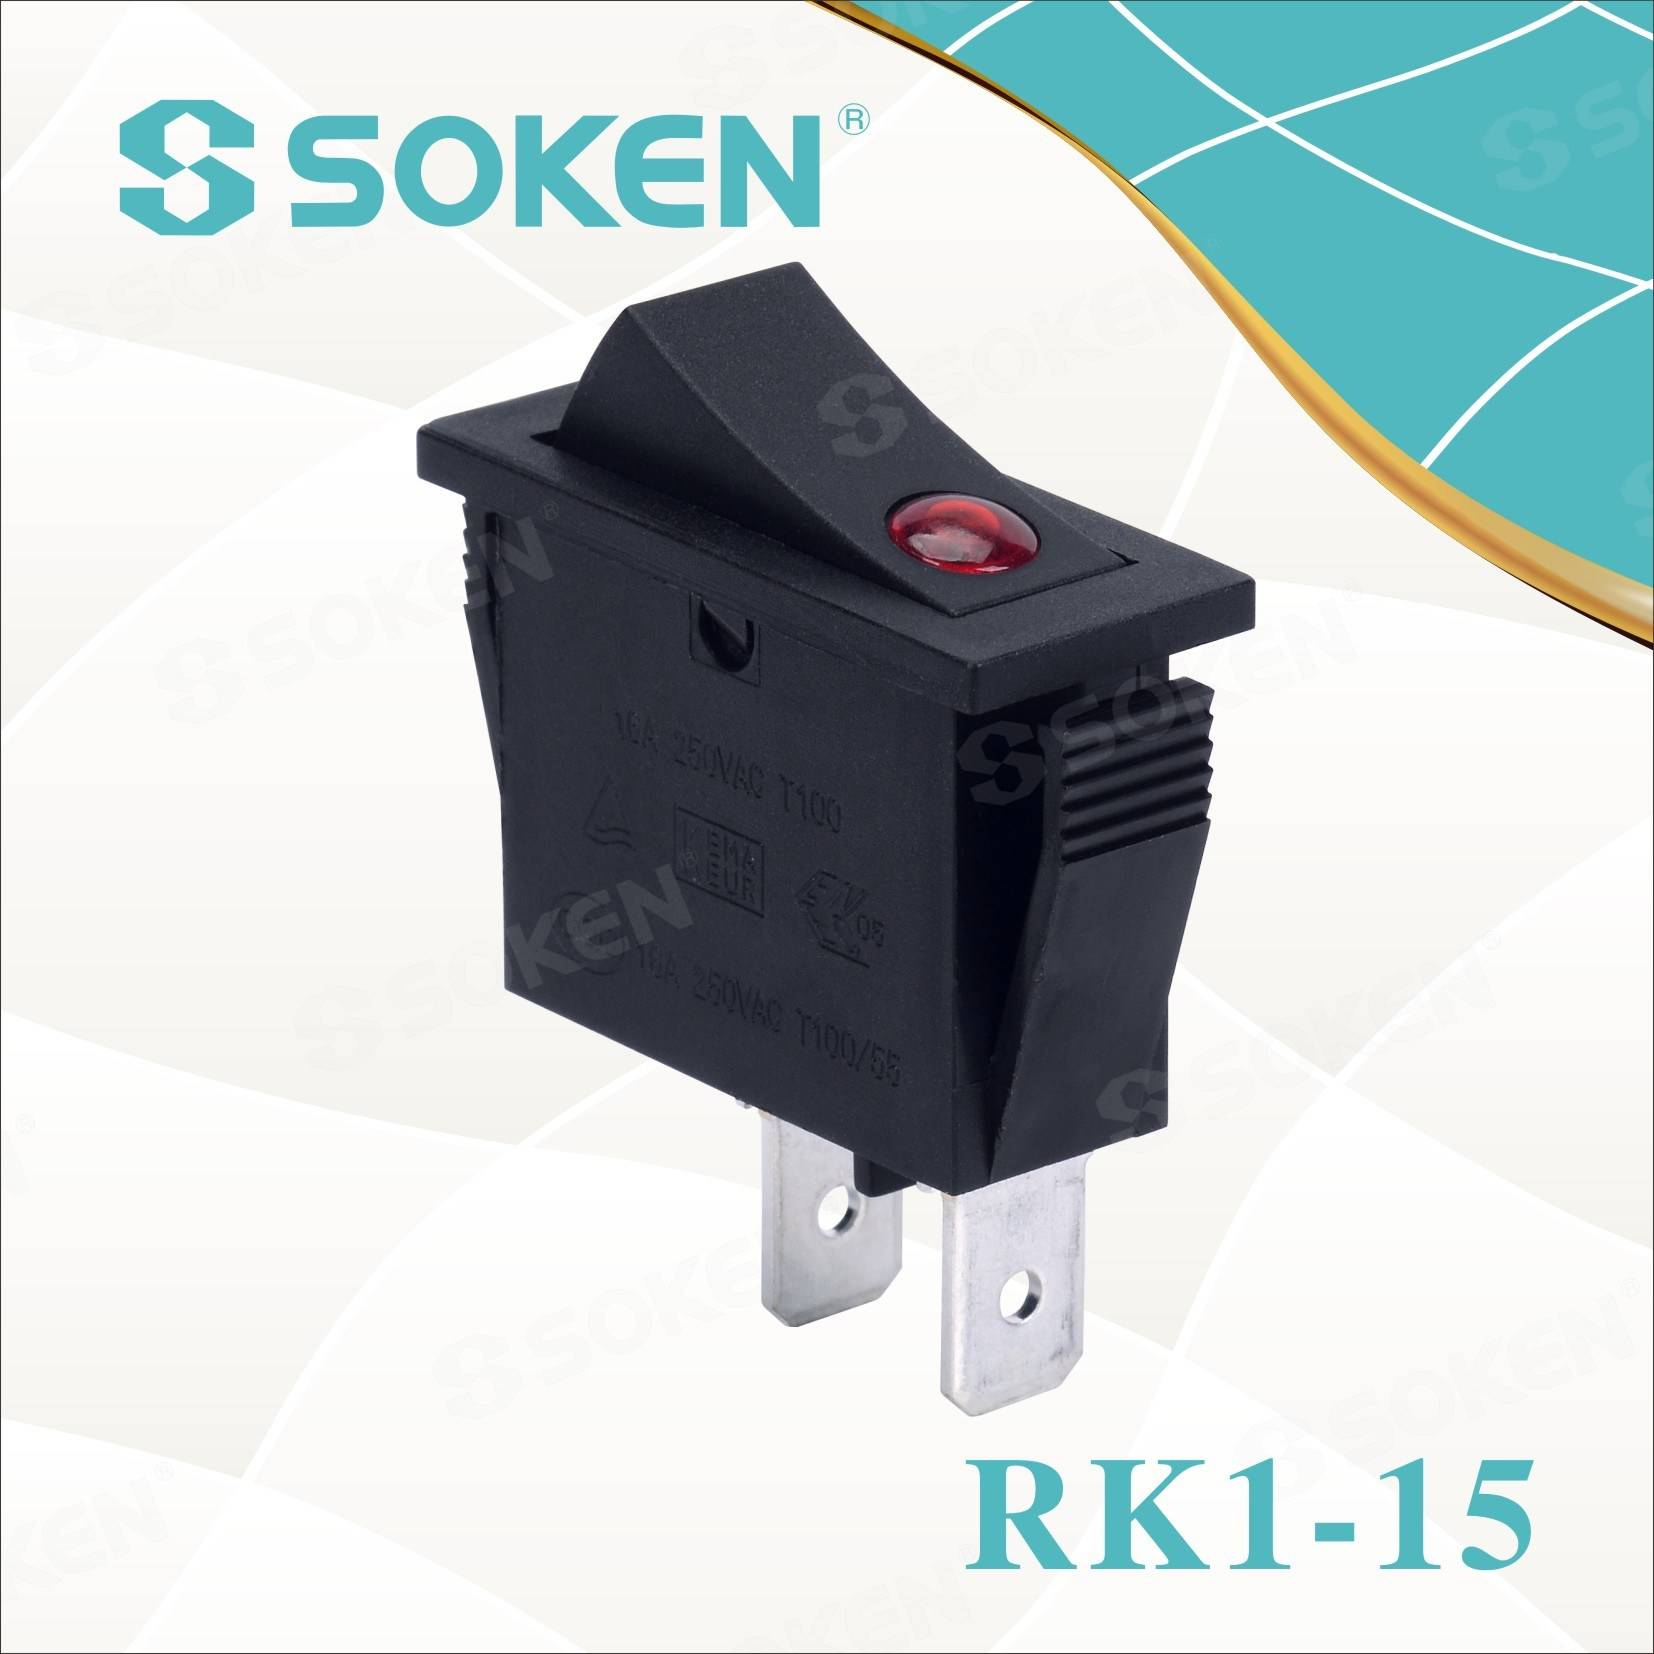 Soken Rk1-15 1x1 B / B off Rocker Switch on